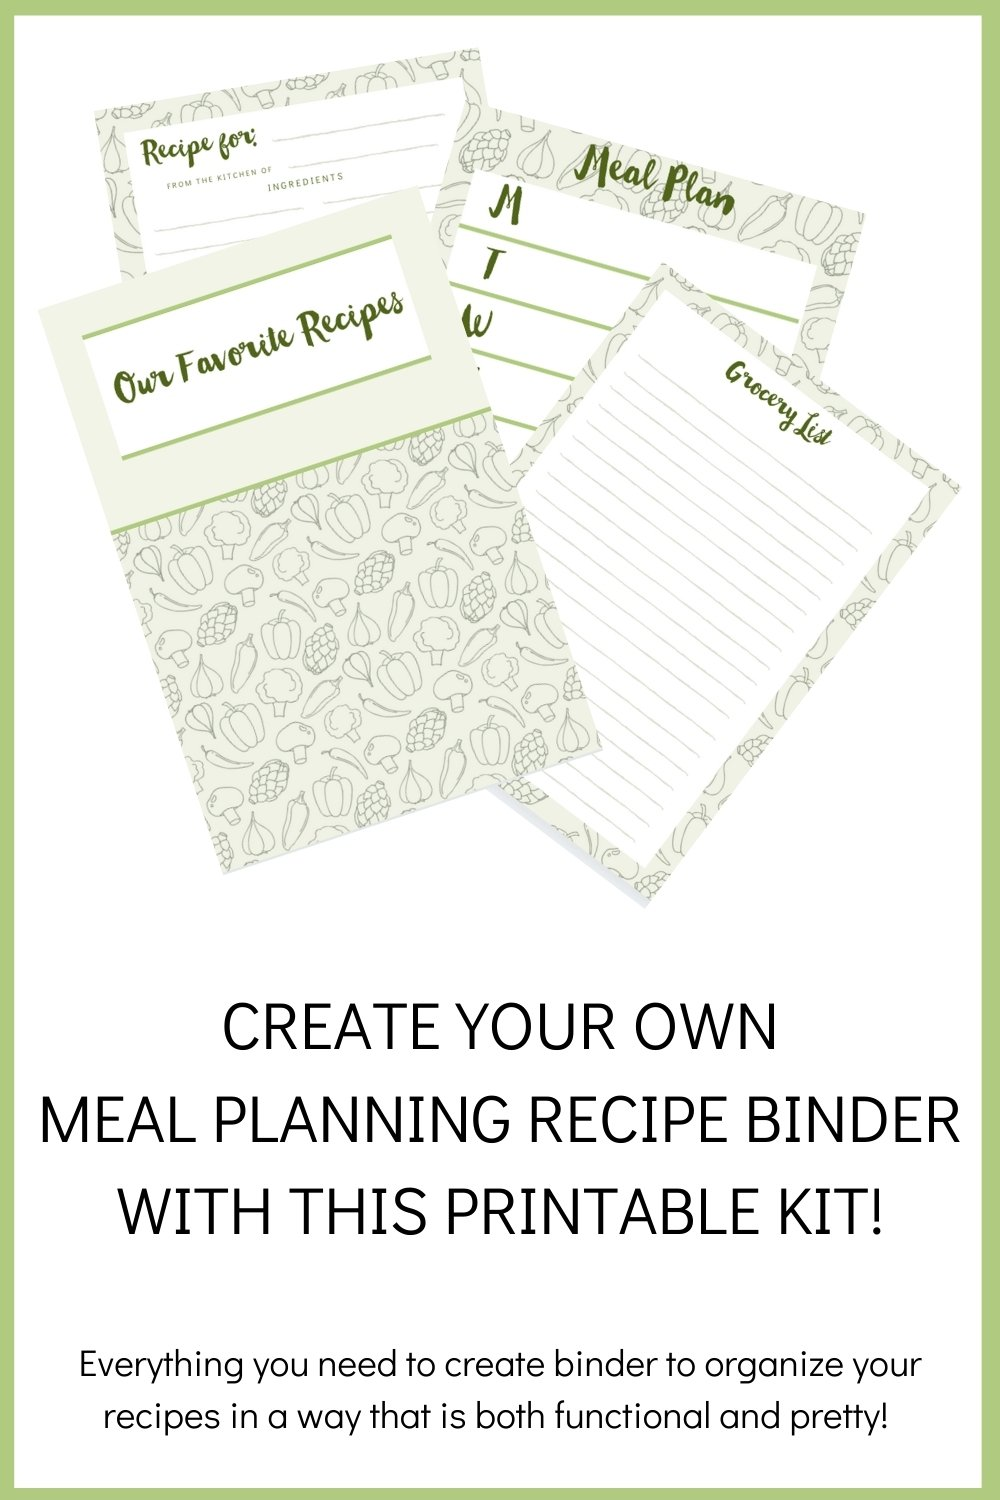 Create your own meal planning recipe binder with this printable kit!